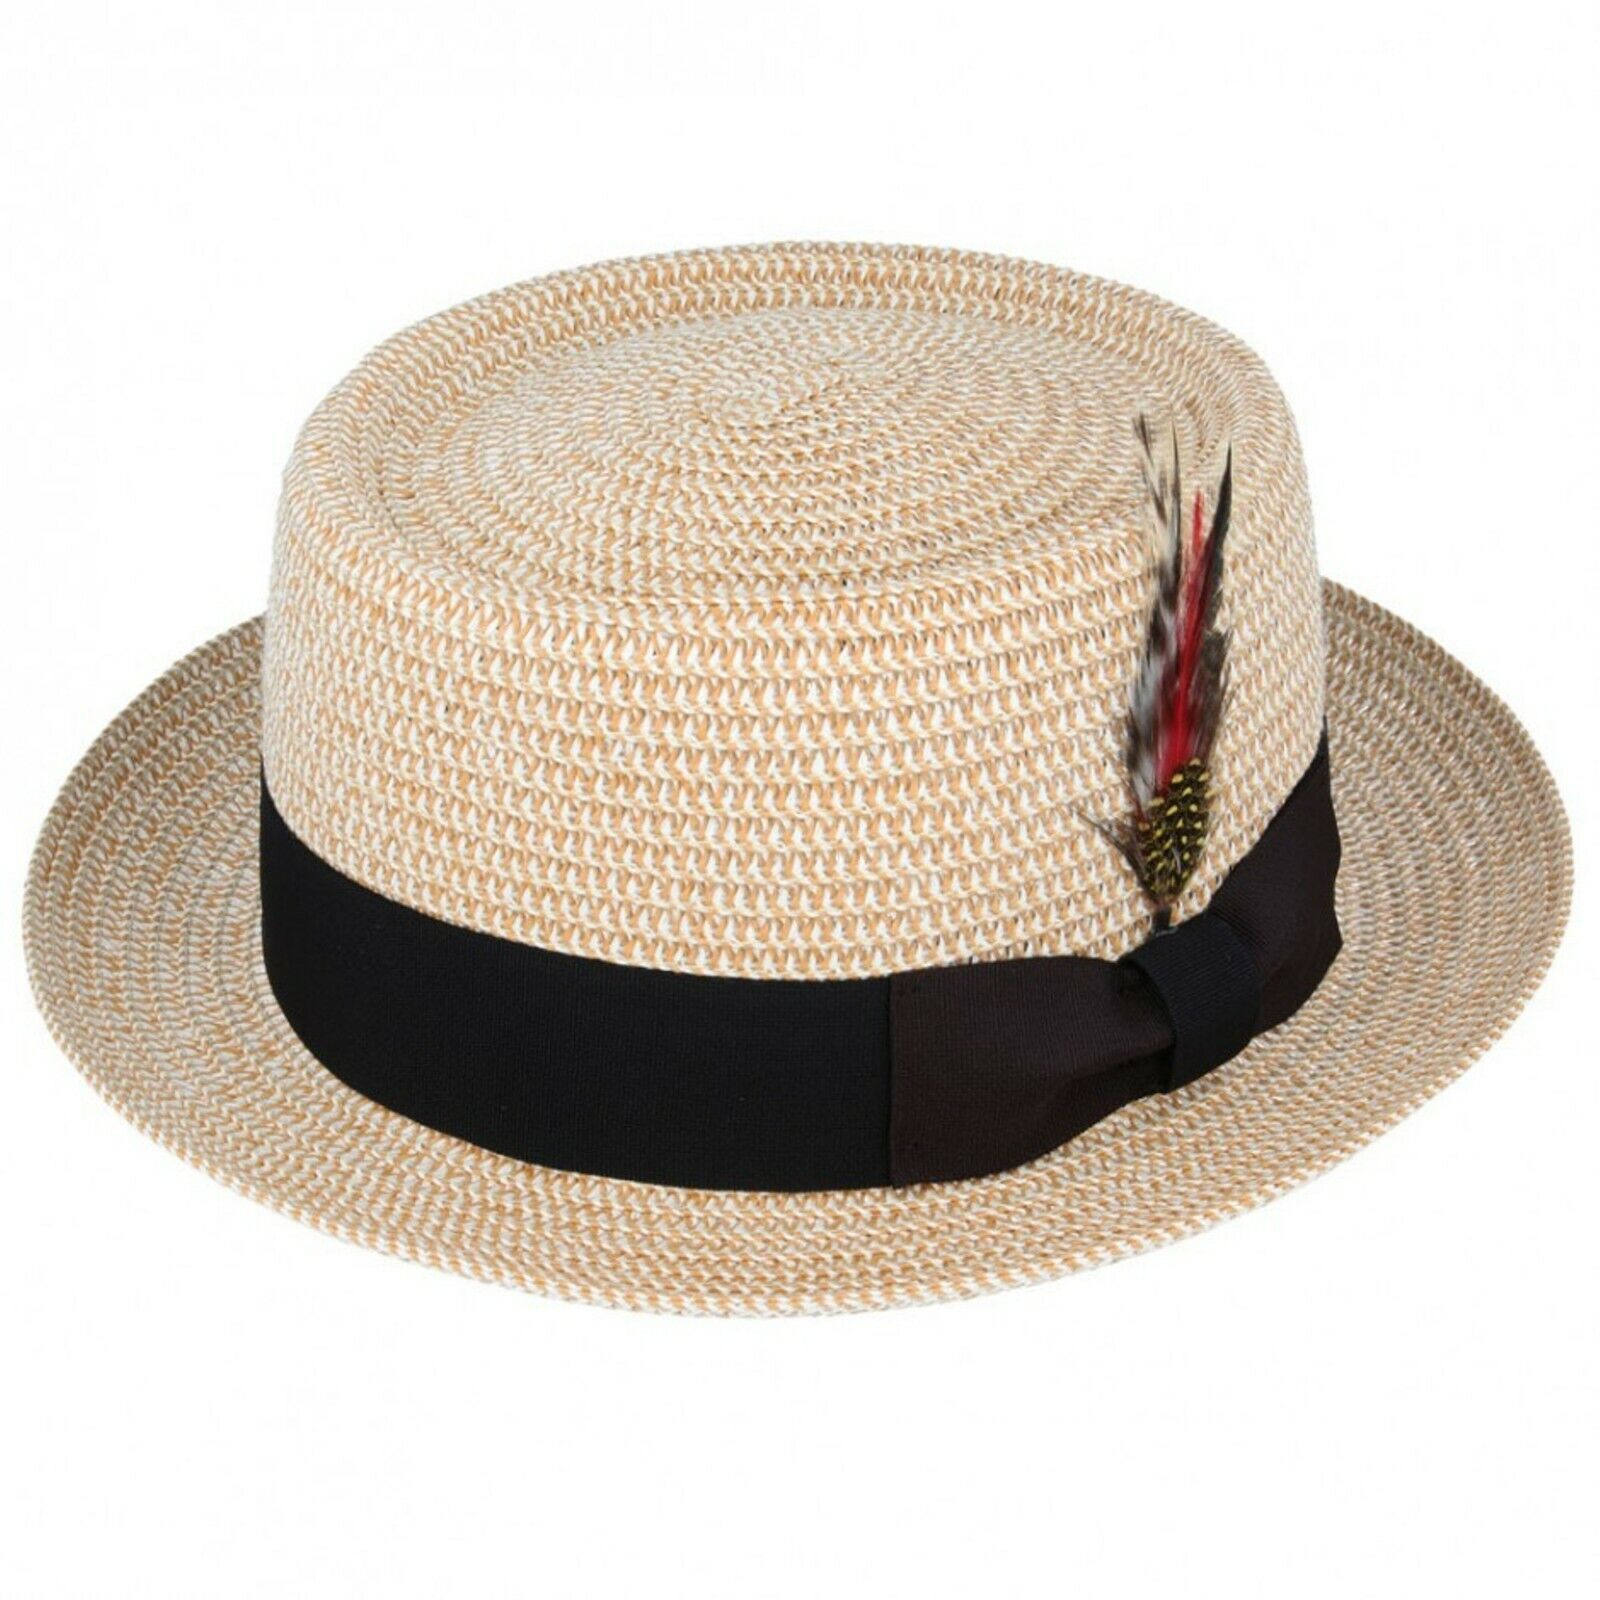 Unisex Straw Crushable Foldable Summer Trilby Hat  with Removable Feather